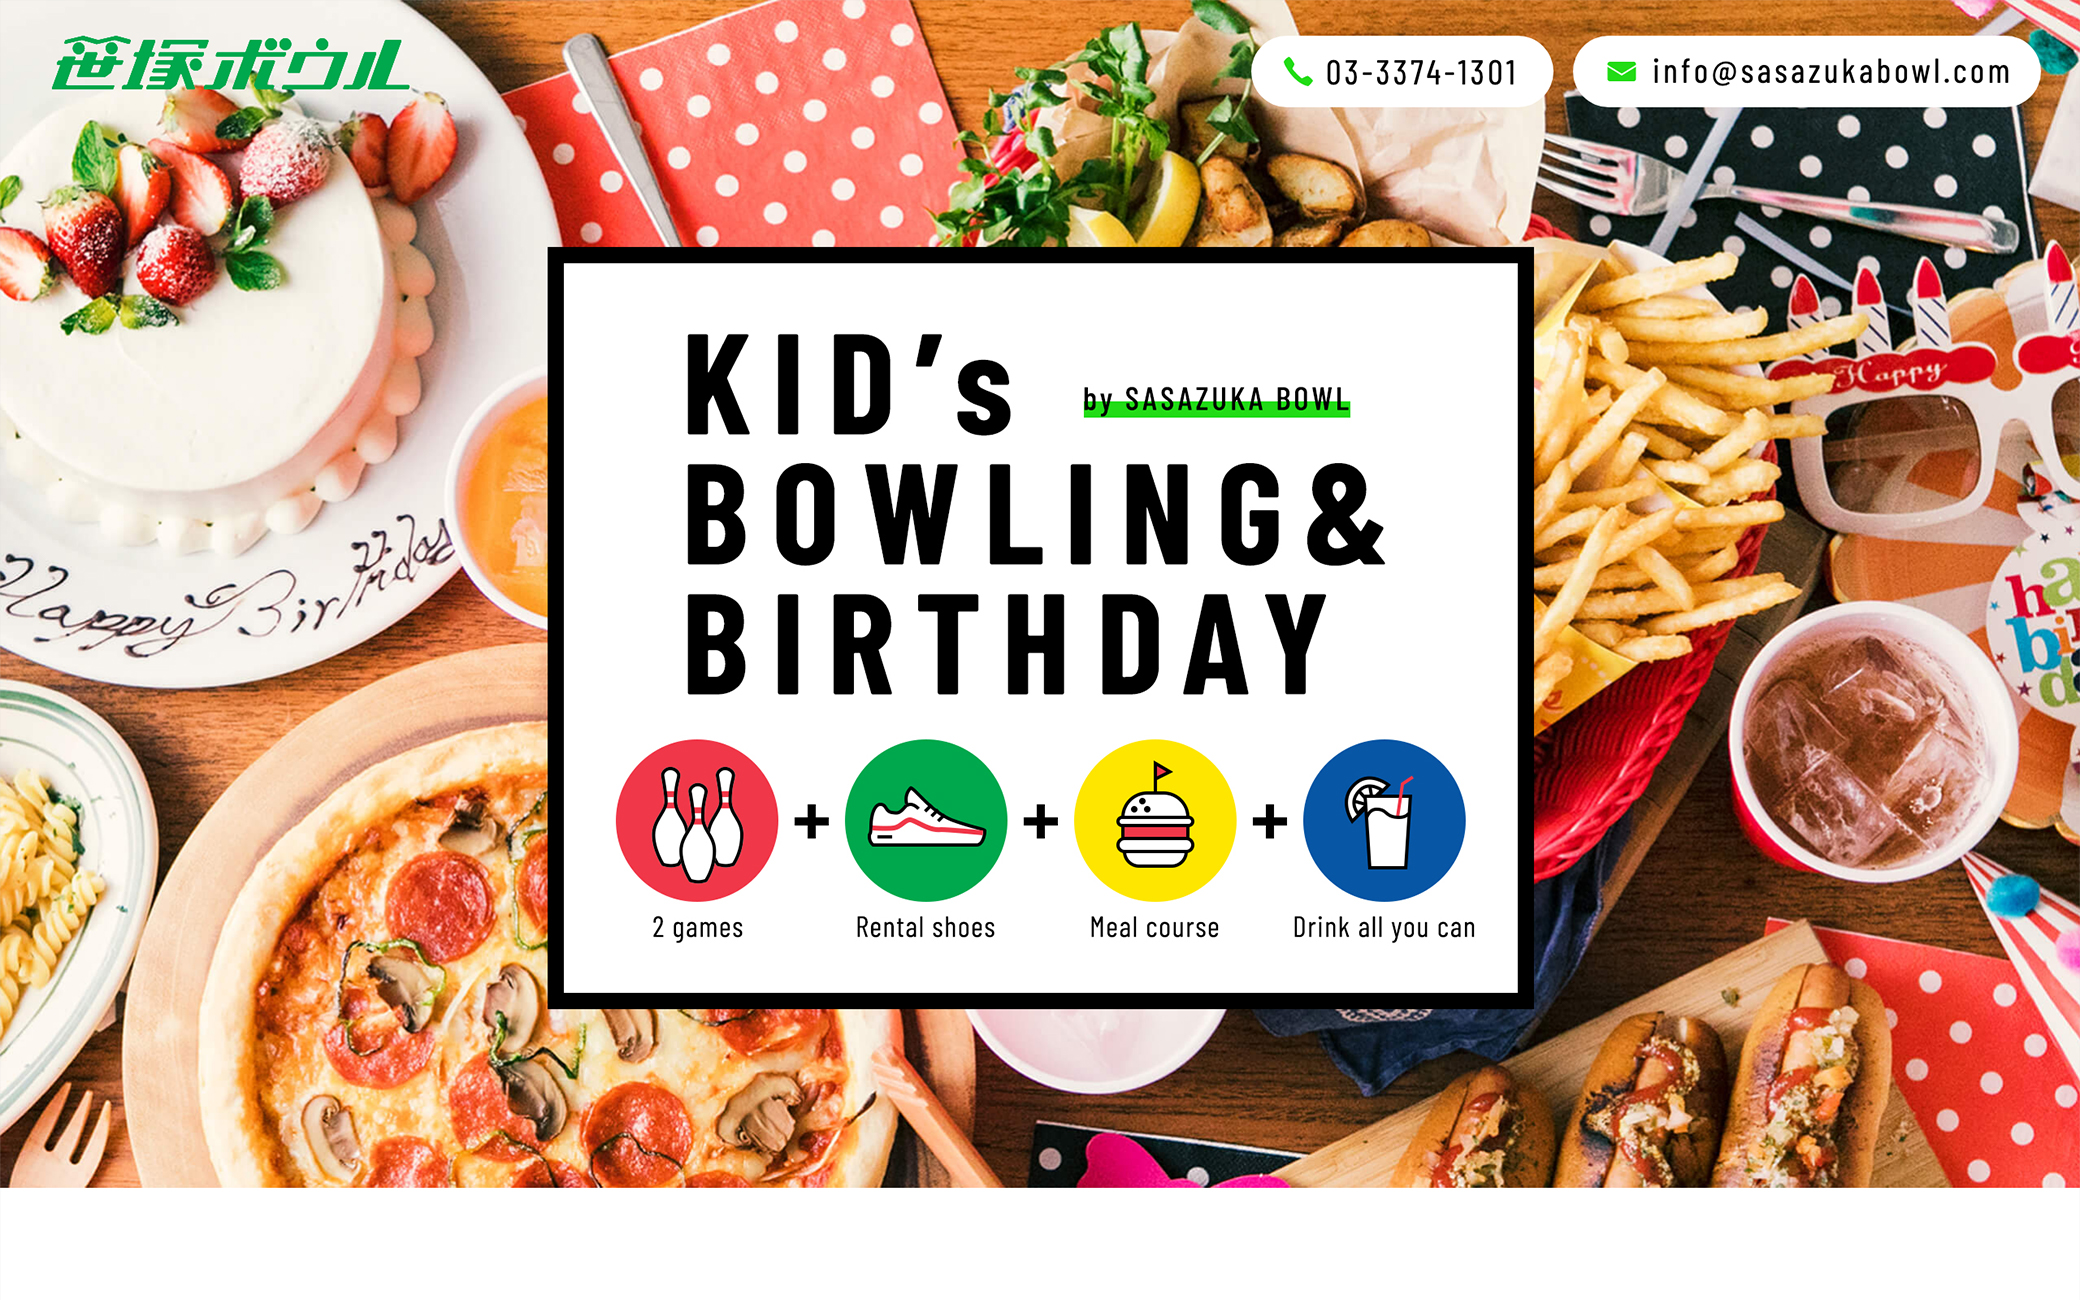 笹塚ボウル Kid's Bowling & Birthday